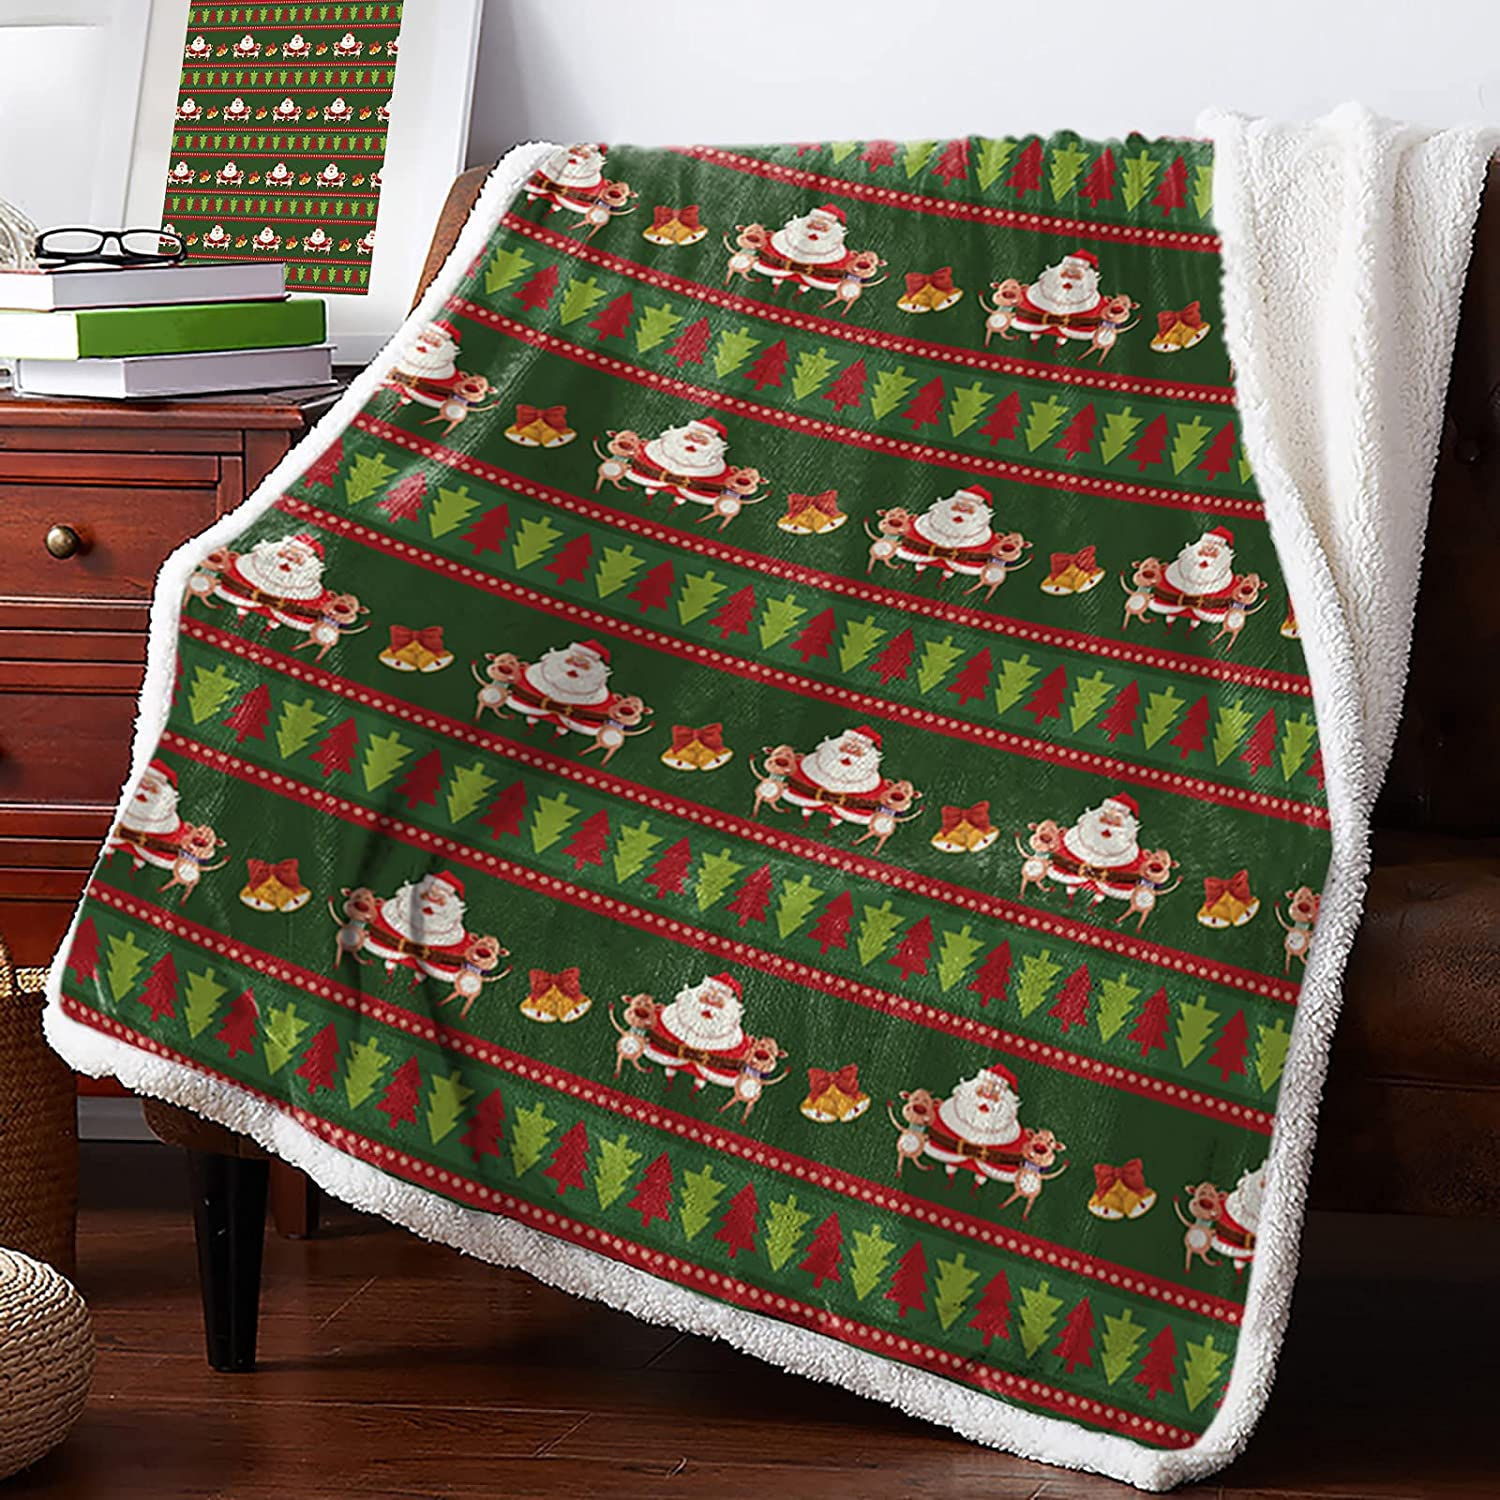 MuswannaA Sherpa Reservation Fleece Throw Blanket Supe Merry Christmas specialty shop Theme